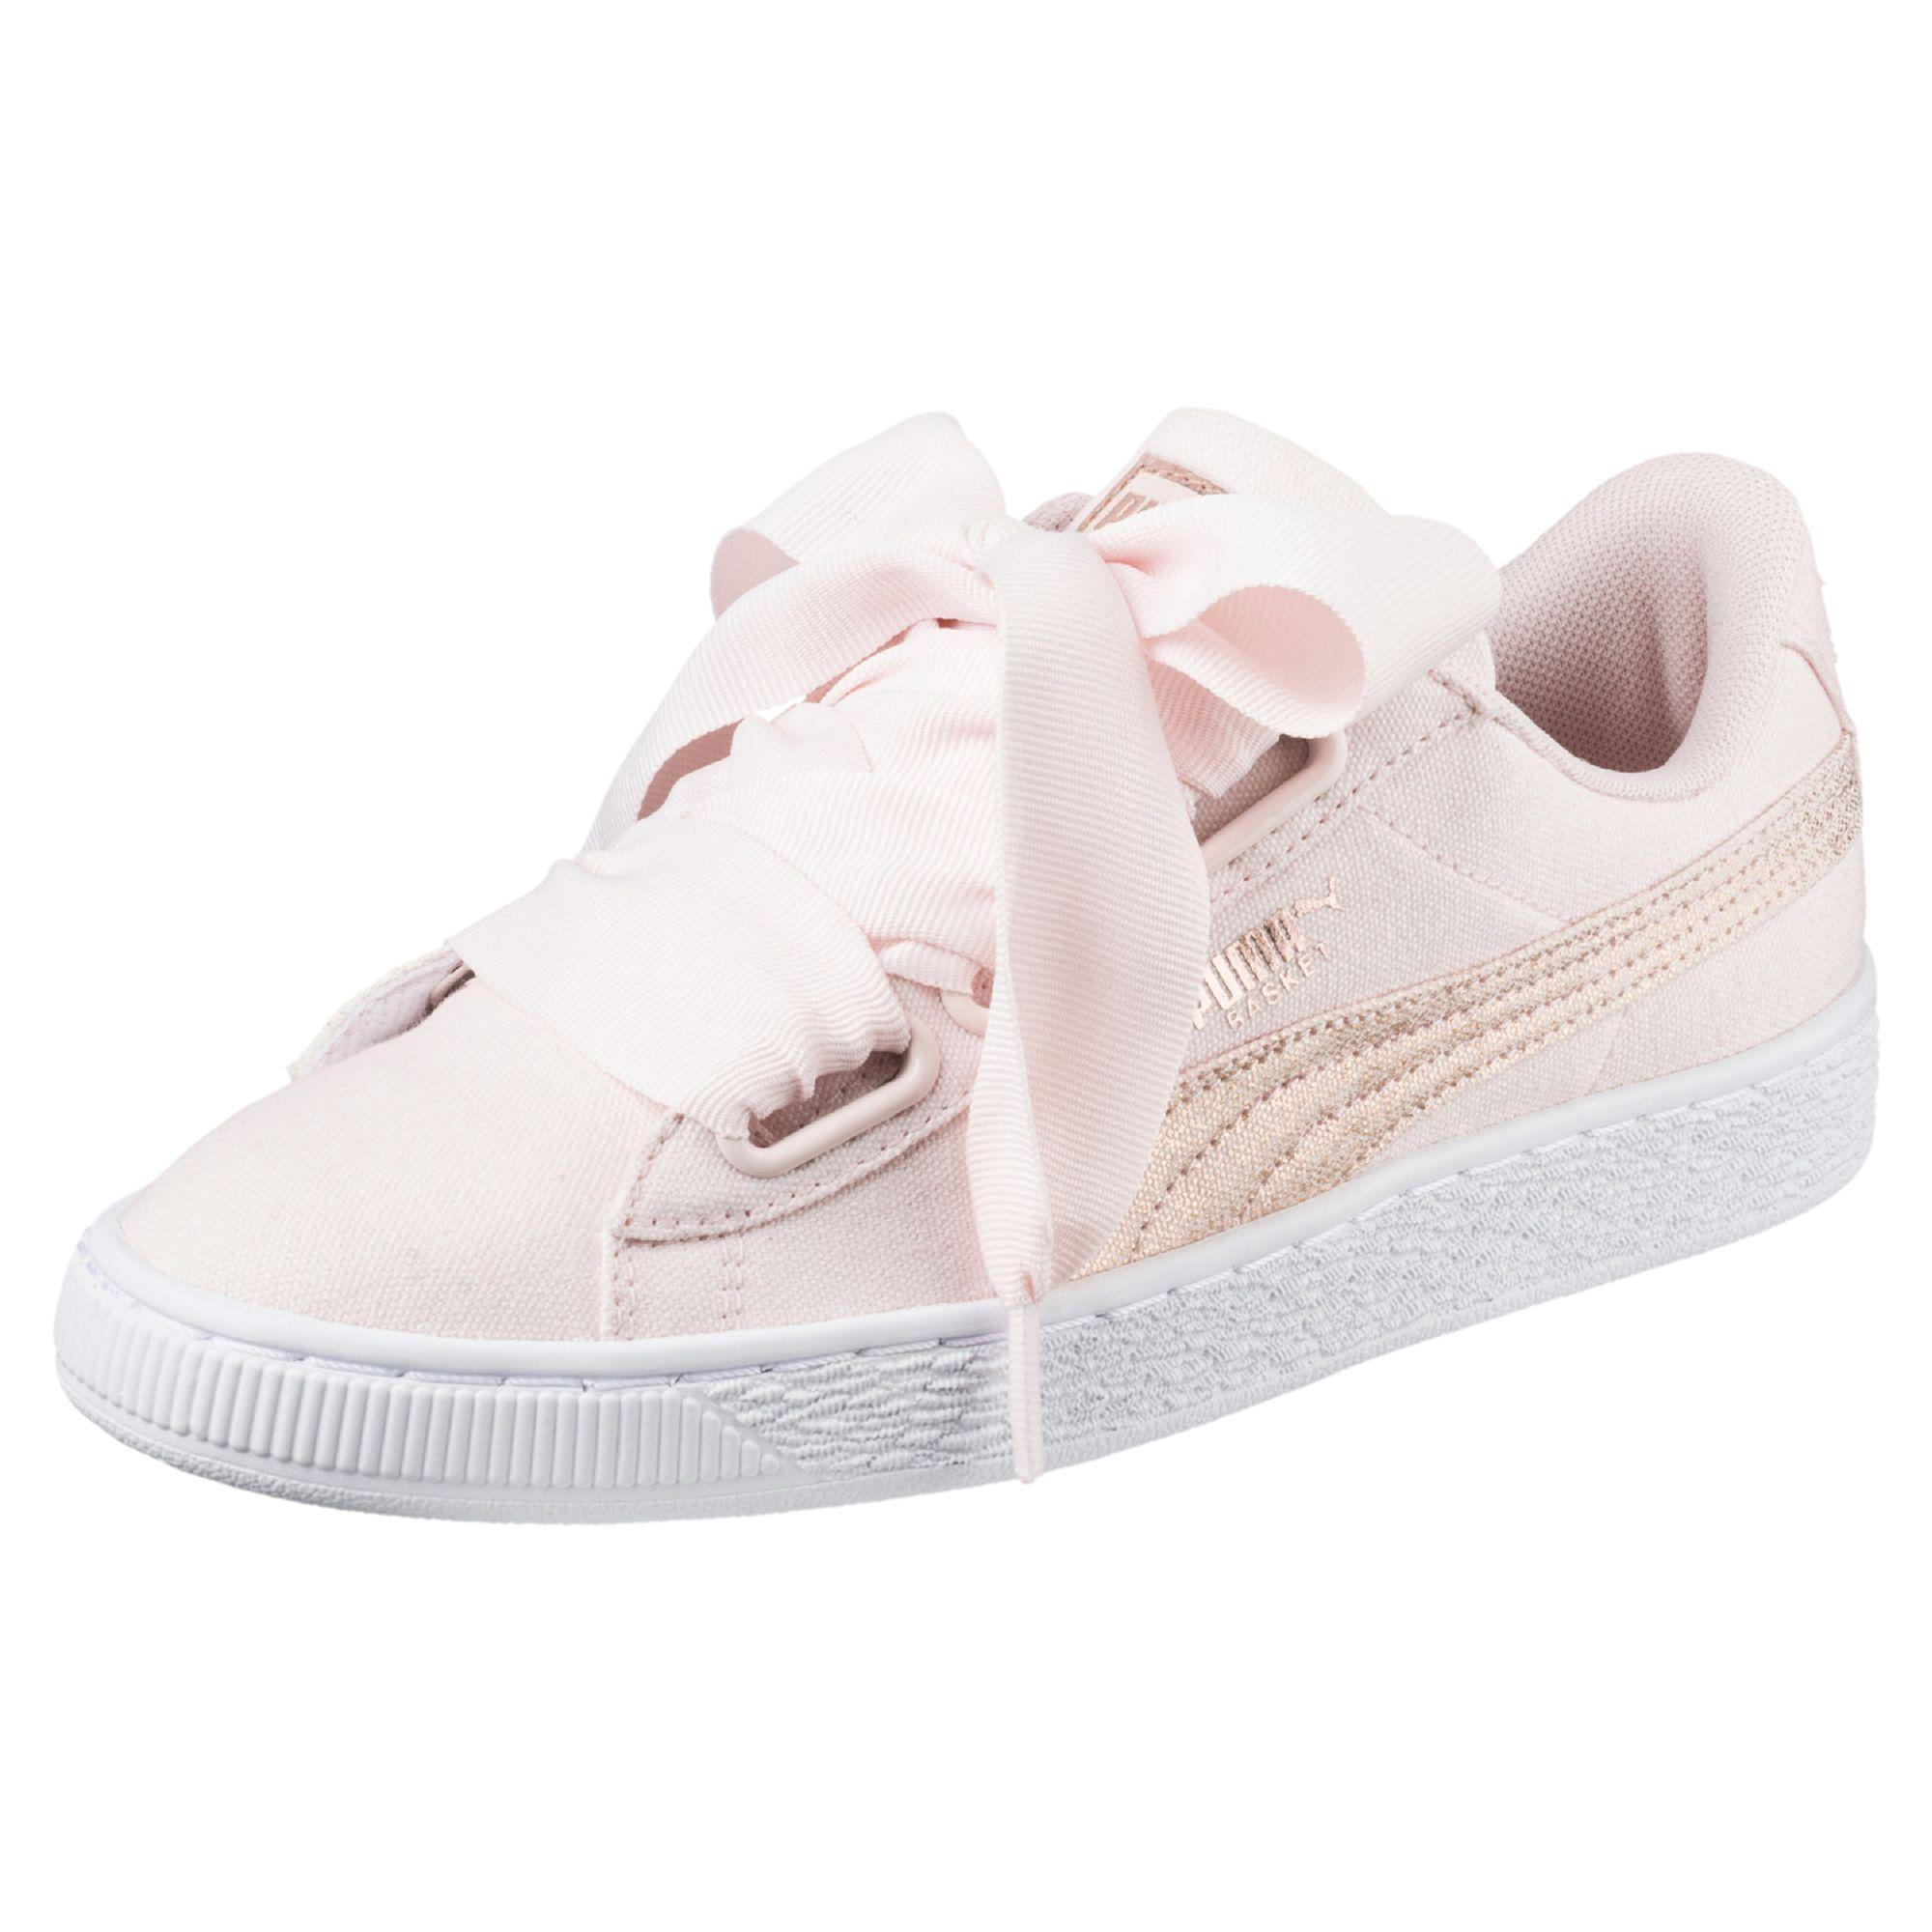 Basket Rose Woman Canvas White Gold Shoes Puma Heart Pearl nkXw80OP